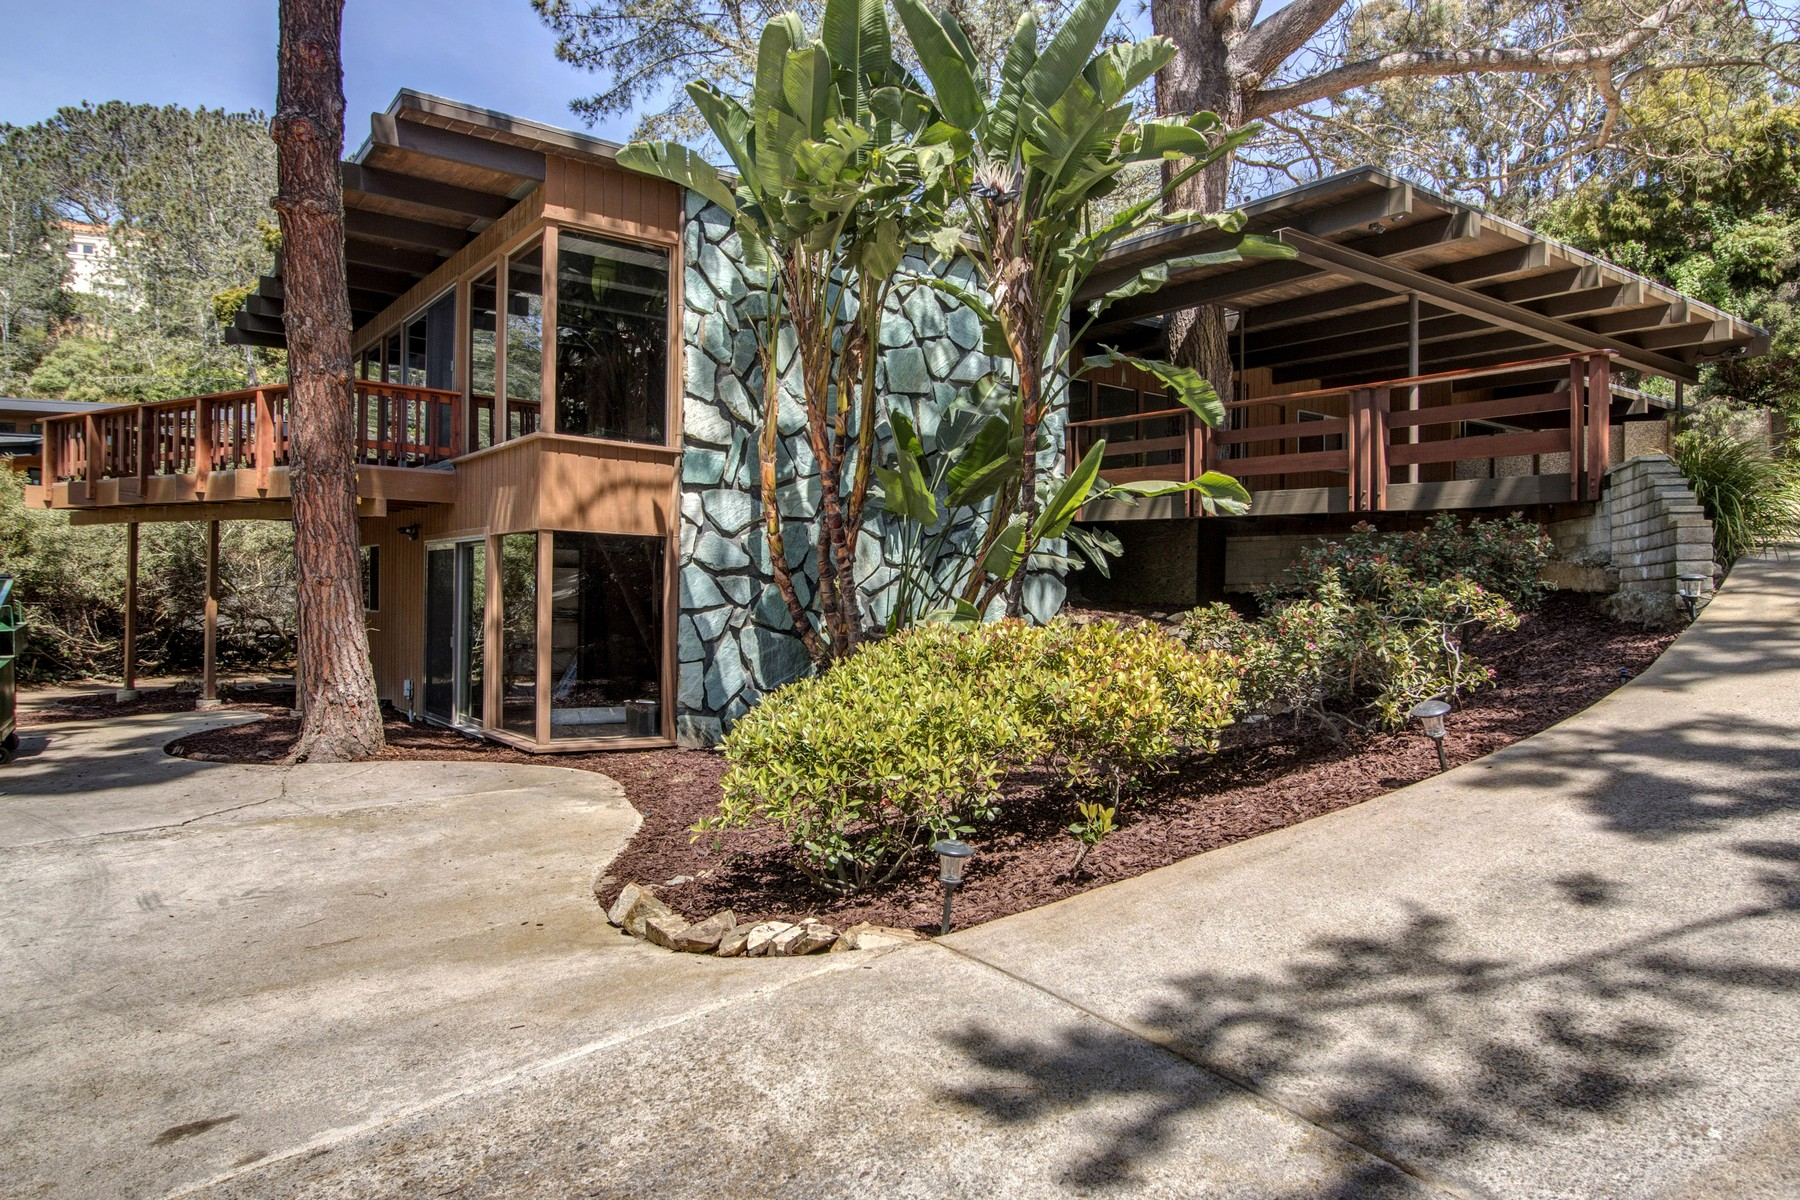 Single Family Home for Sale at 437 Pine Needles Drive Del Mar, California, 92014 United States